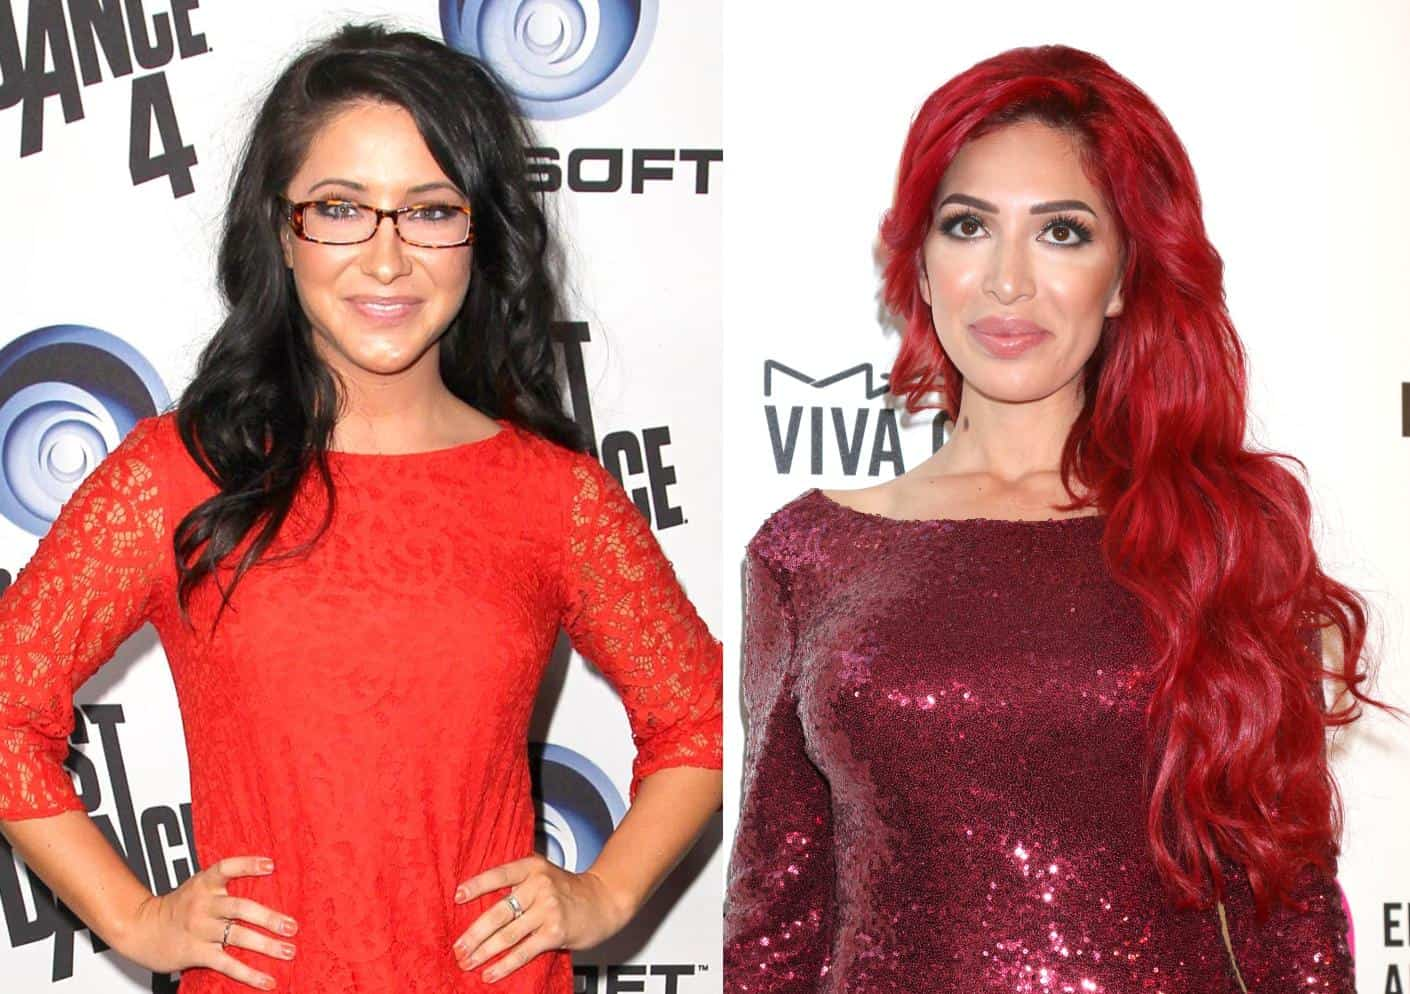 Teen Mom OG Bristol Palin slams Farrah Abraham